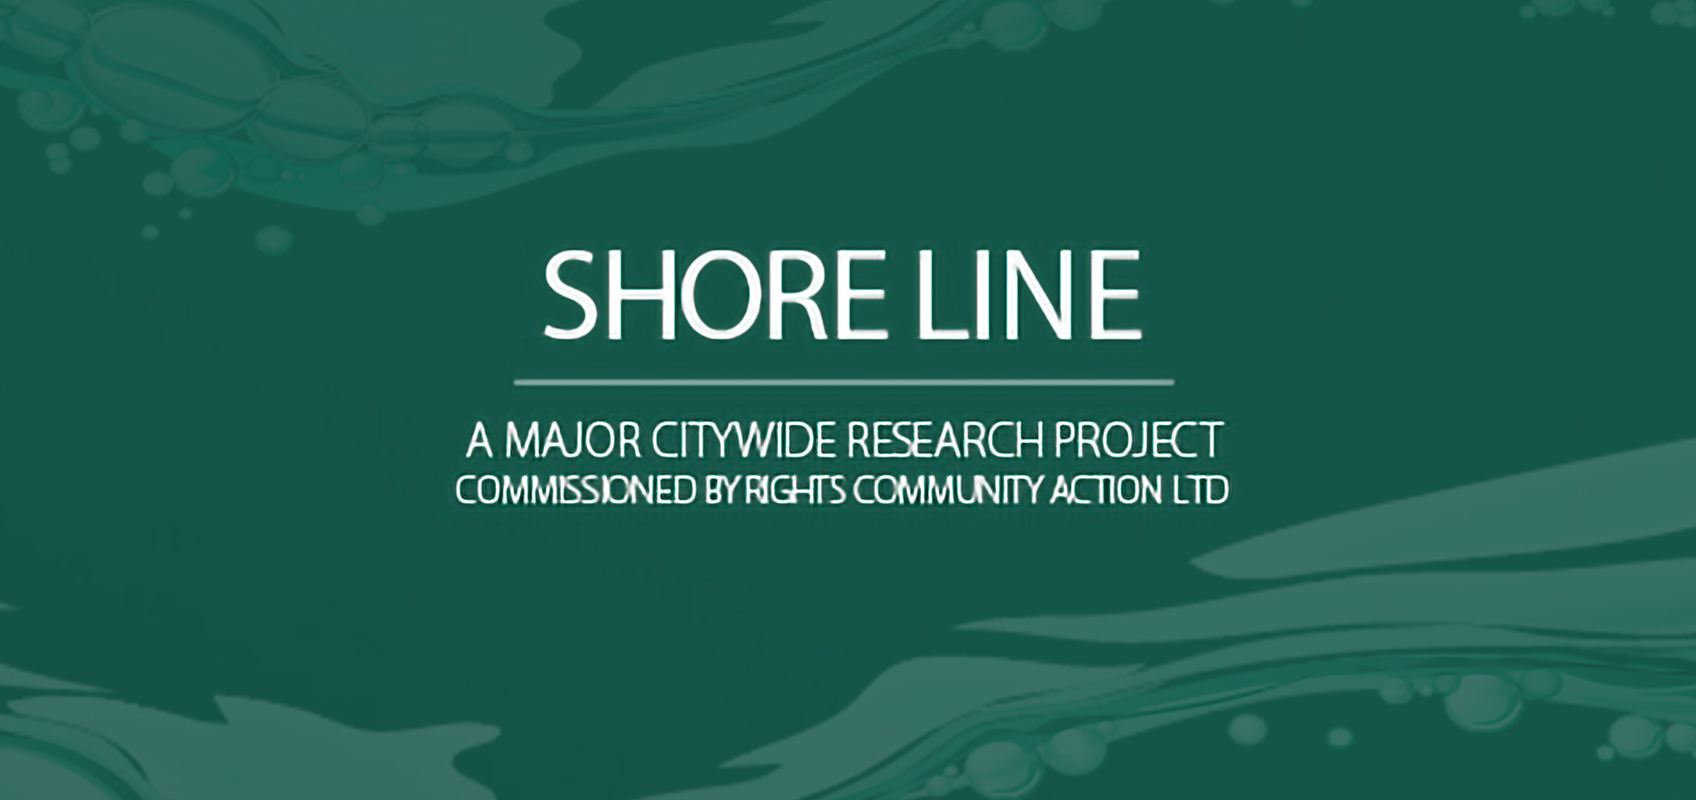 Shoreline, A Major Citywide Research Project